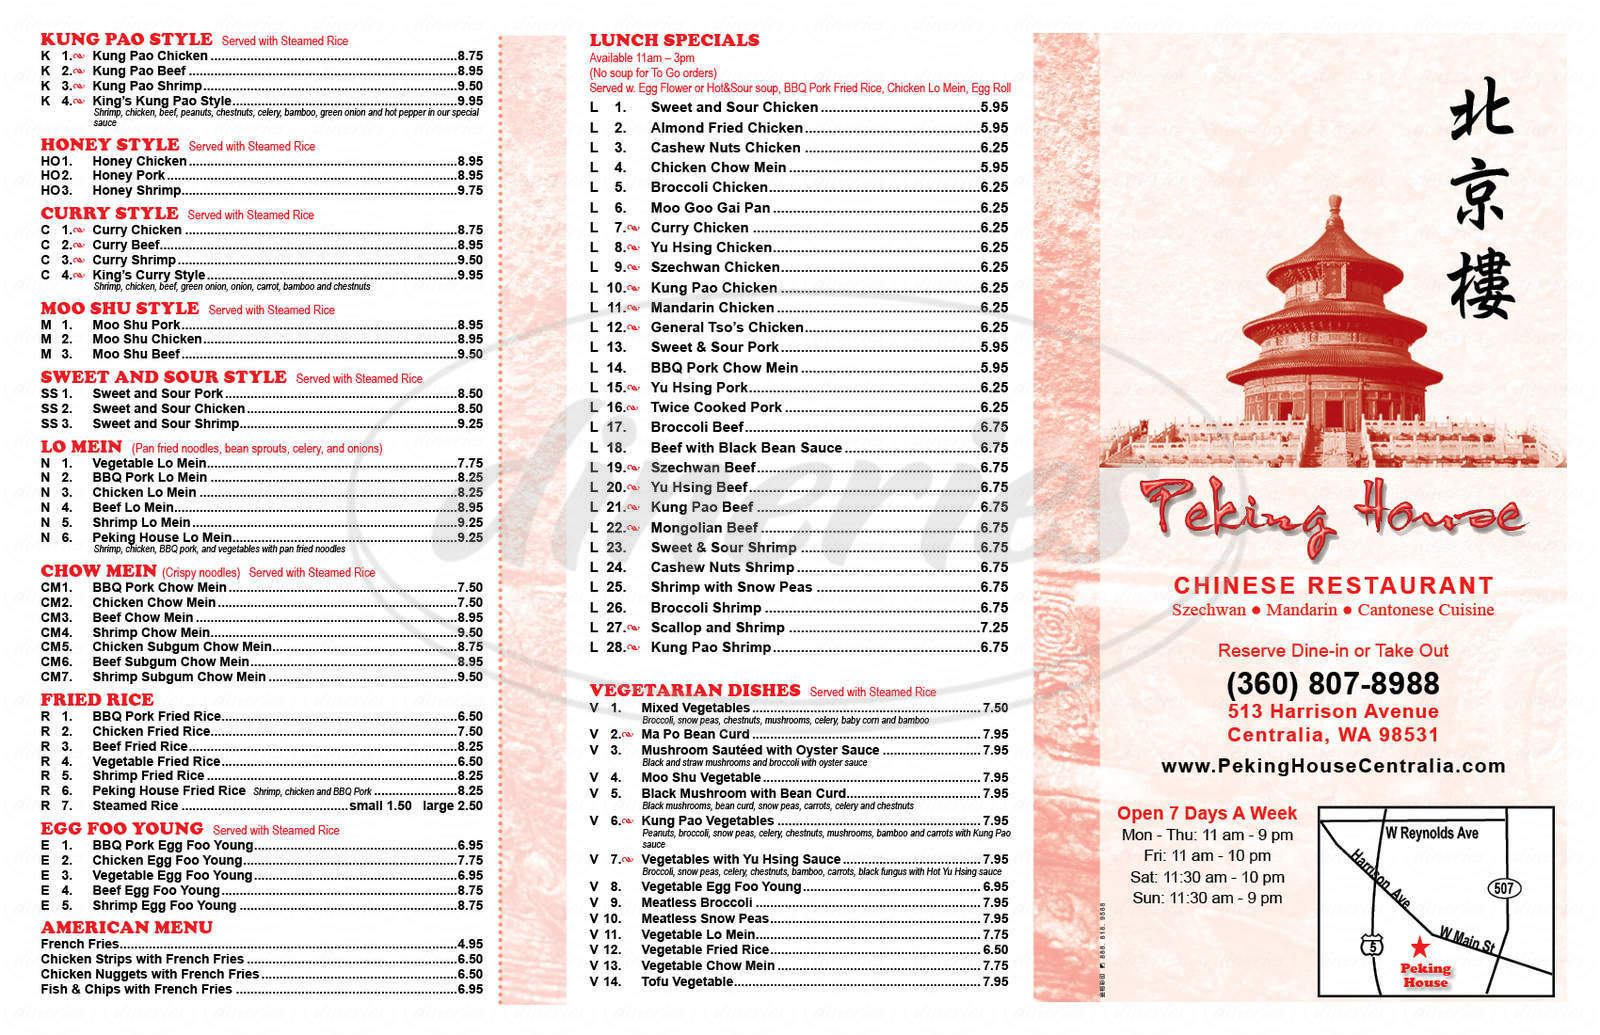 menu for Peking House